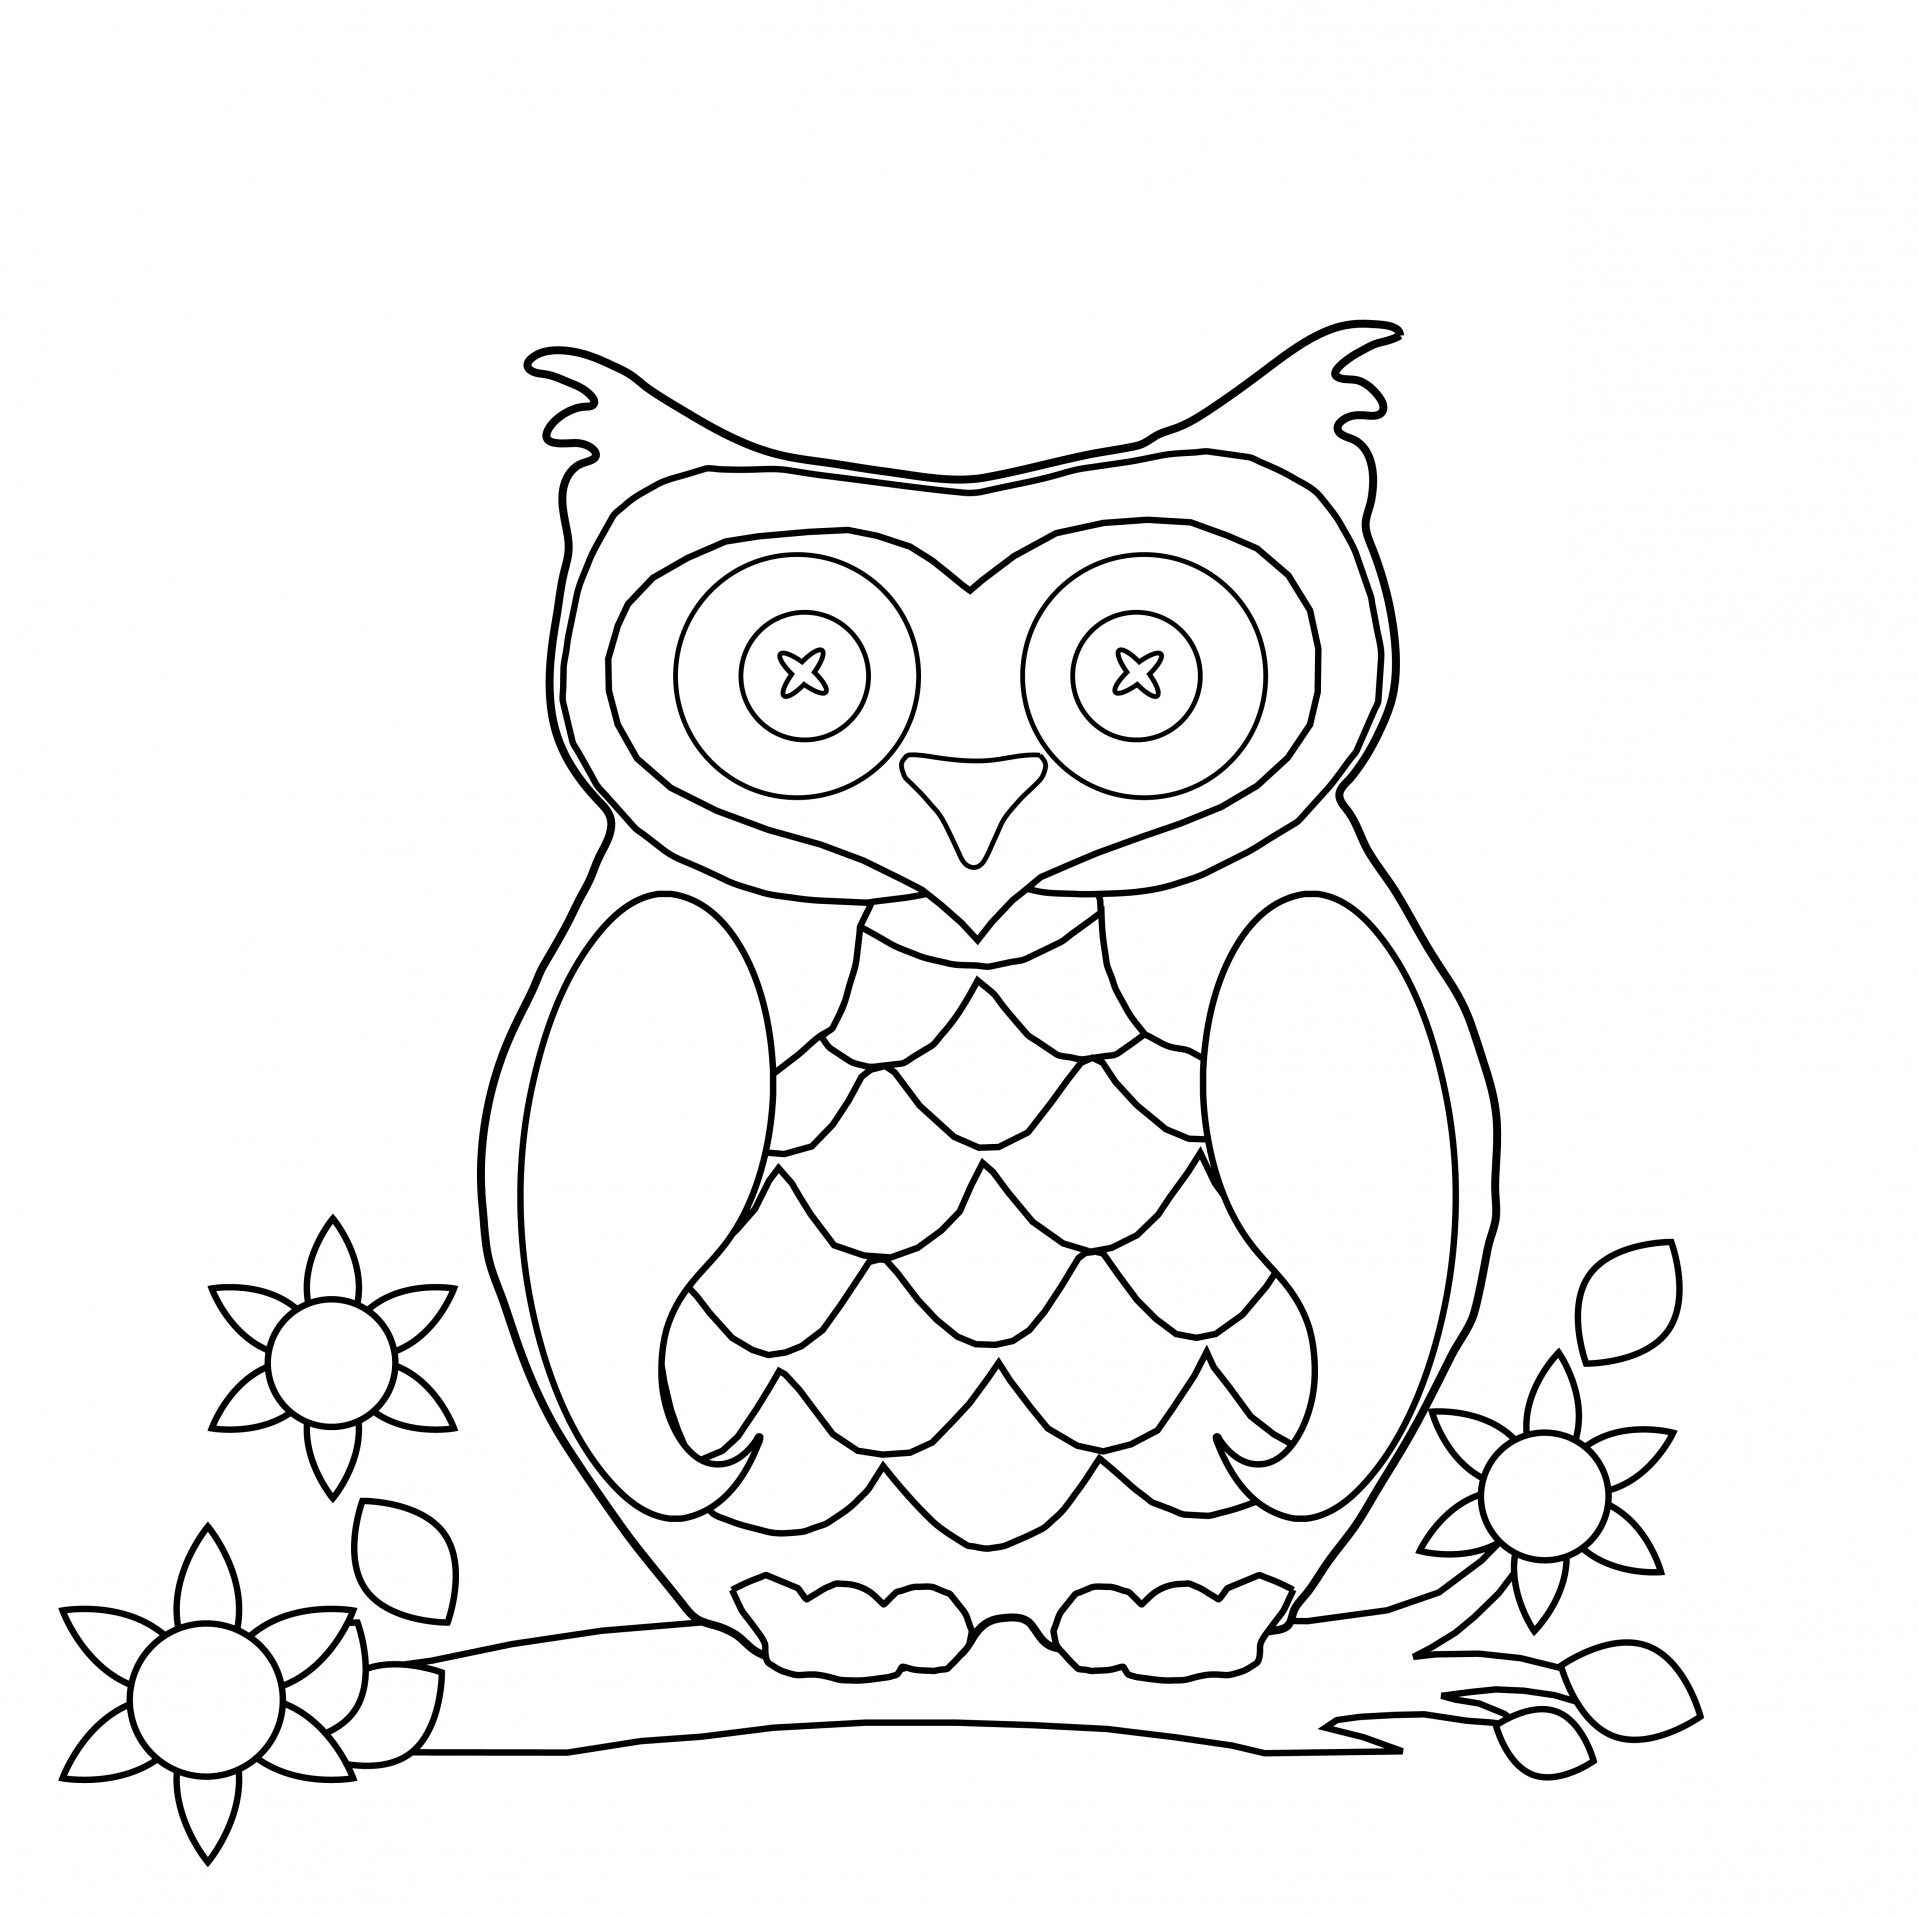 color pages printable free printable tangled coloring pages for kids cool2bkids color printable pages